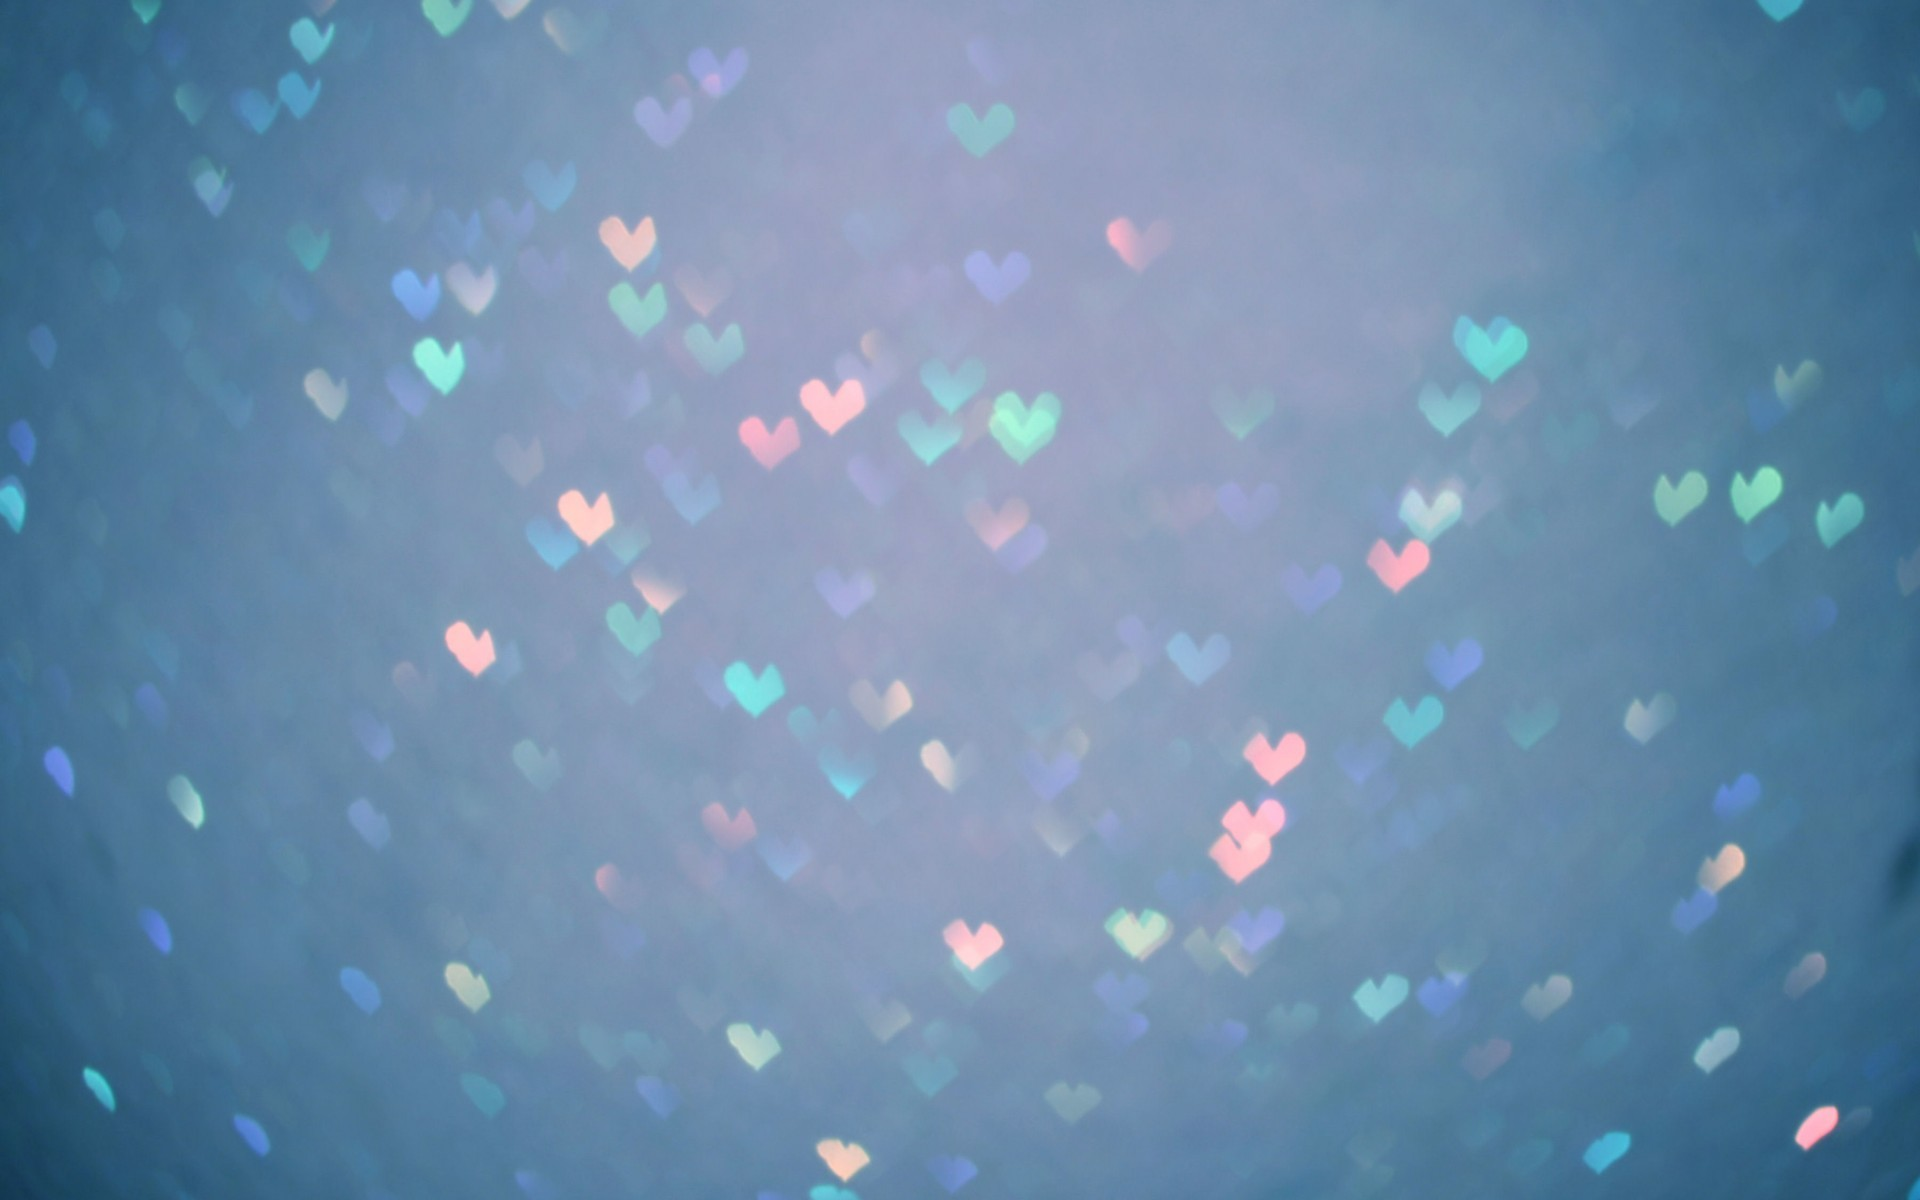 colorful bokeh hearts texture background wallpaper hd